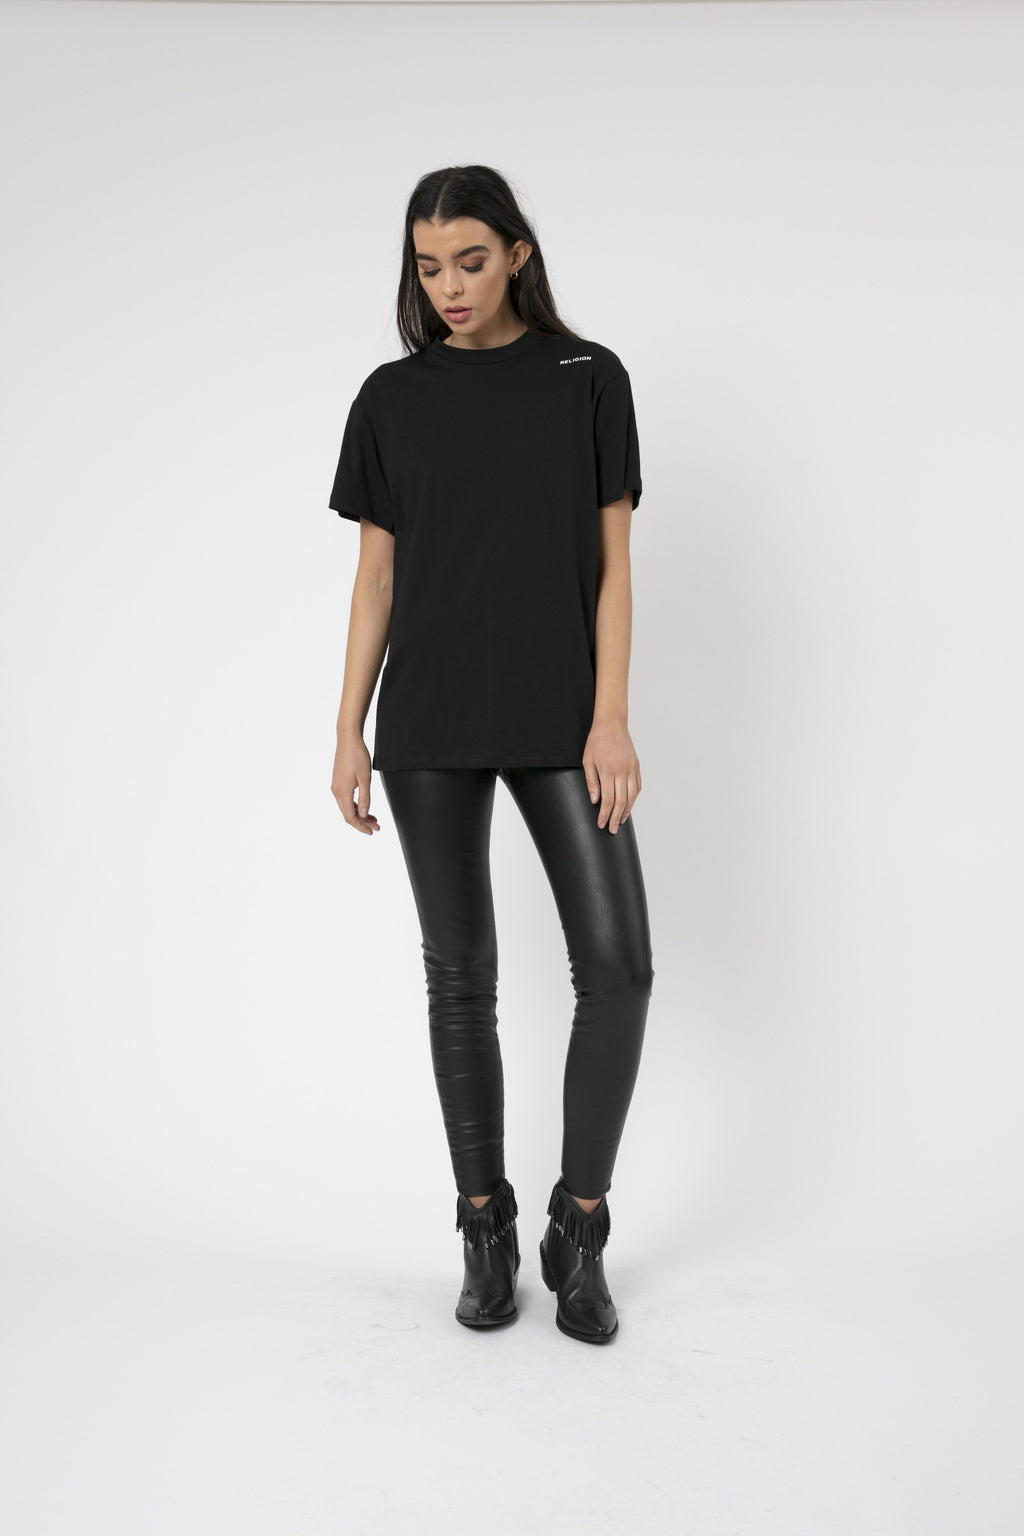 unisex black tshirt crew neck and short sleeves